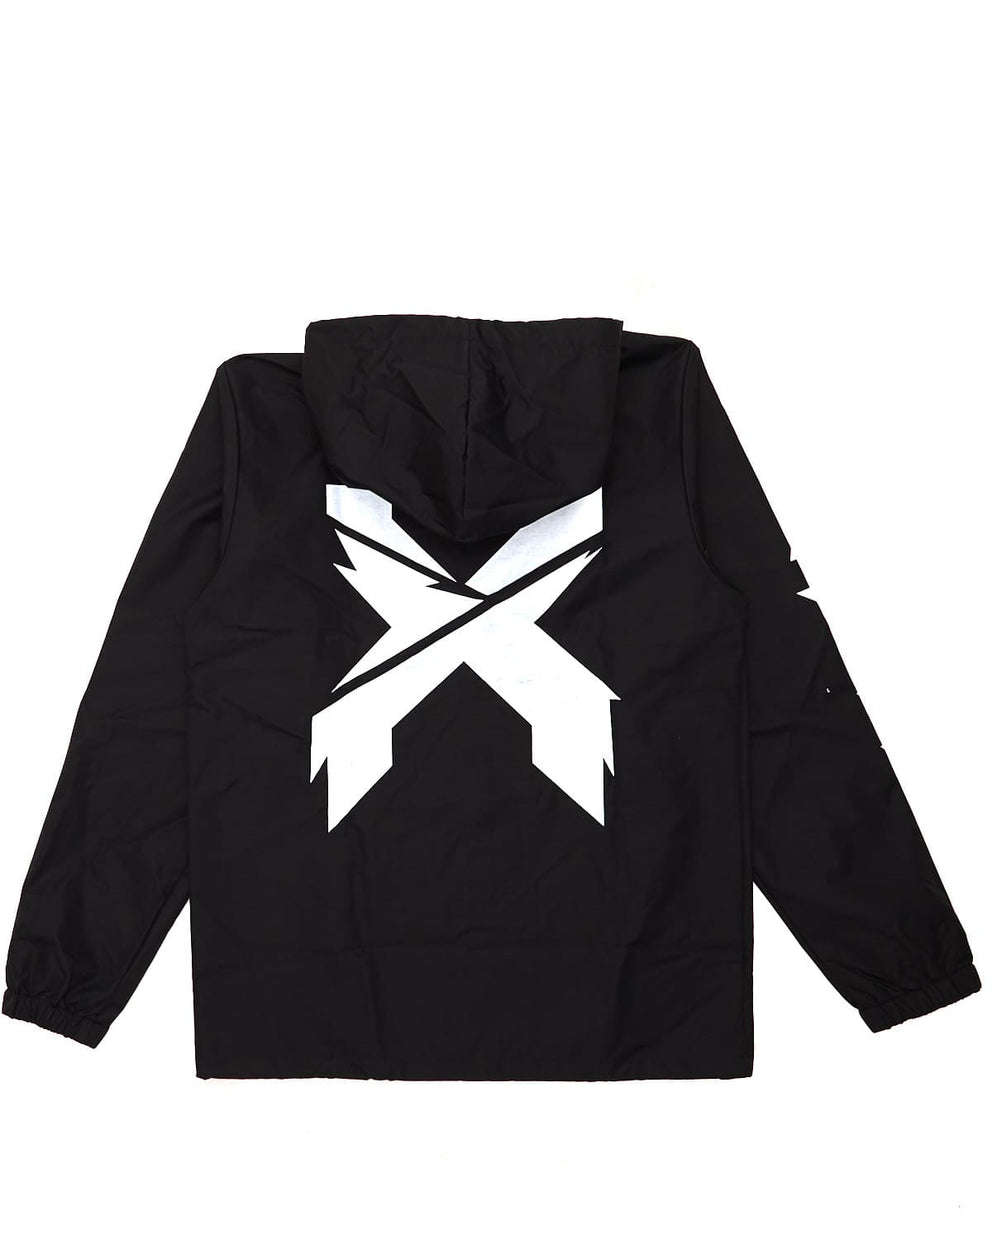 Excision Hooded Windbreaker - Black/White